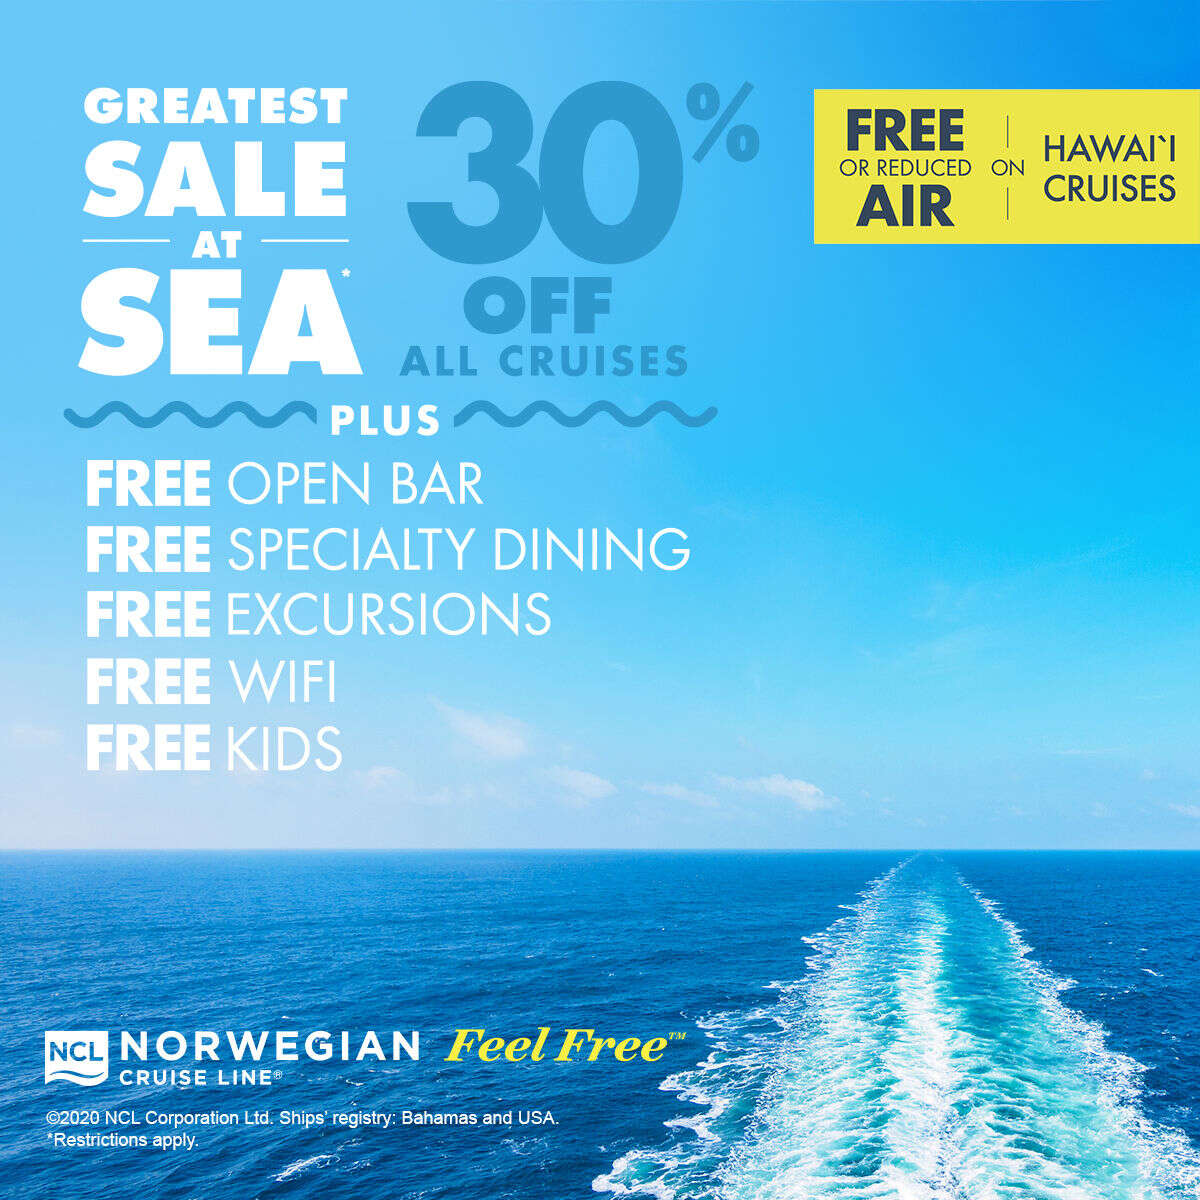 30% off all cruises with Norwegian Cruise Line's Greatest Sale at Sea